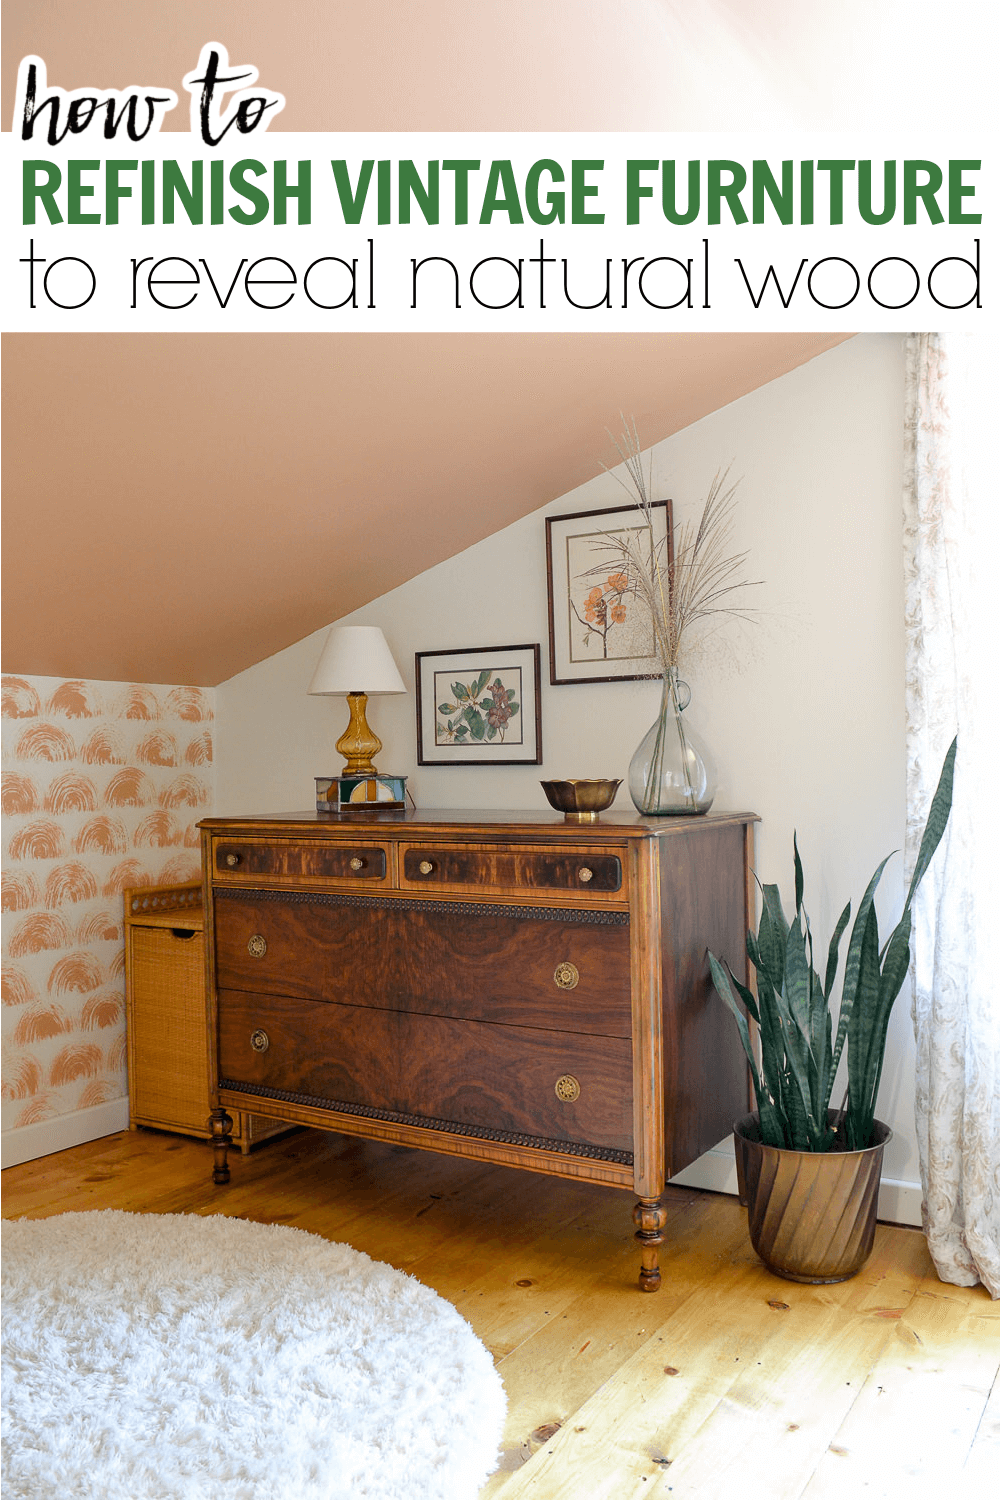 How to strip vintage wood furniture and refinish it to reveal natural woodgrain in MCM furniture.